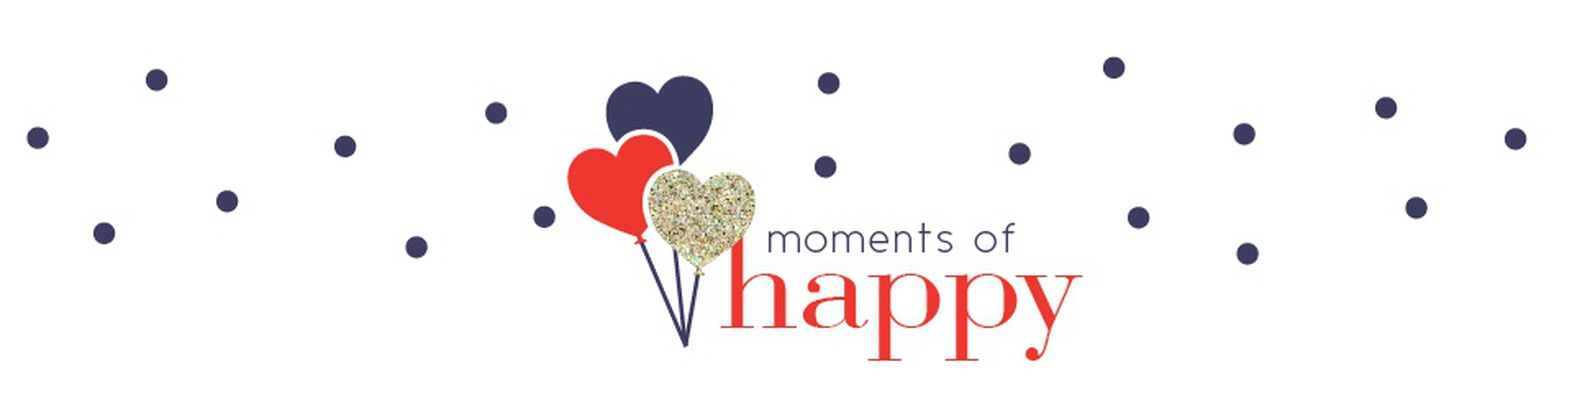 happy moments Birthday ecard - sending birthday ecards like the happy moments from bluemountaincom is quick, easy and shows you care visit bluemountaincom today for thoughtful im.